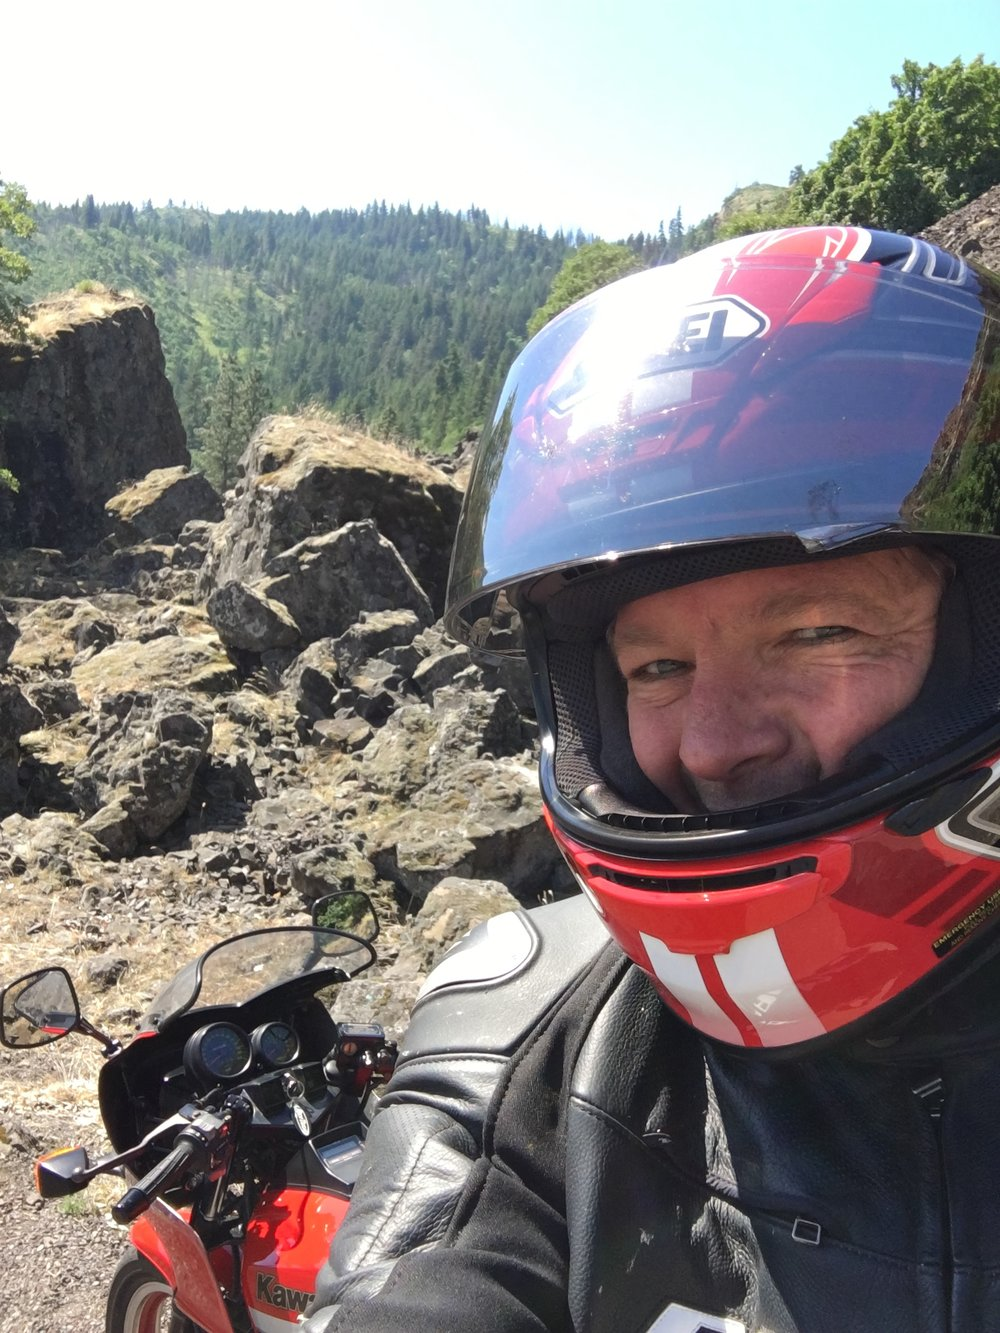 Taking a selfie break along the Columbia Gorge Highway